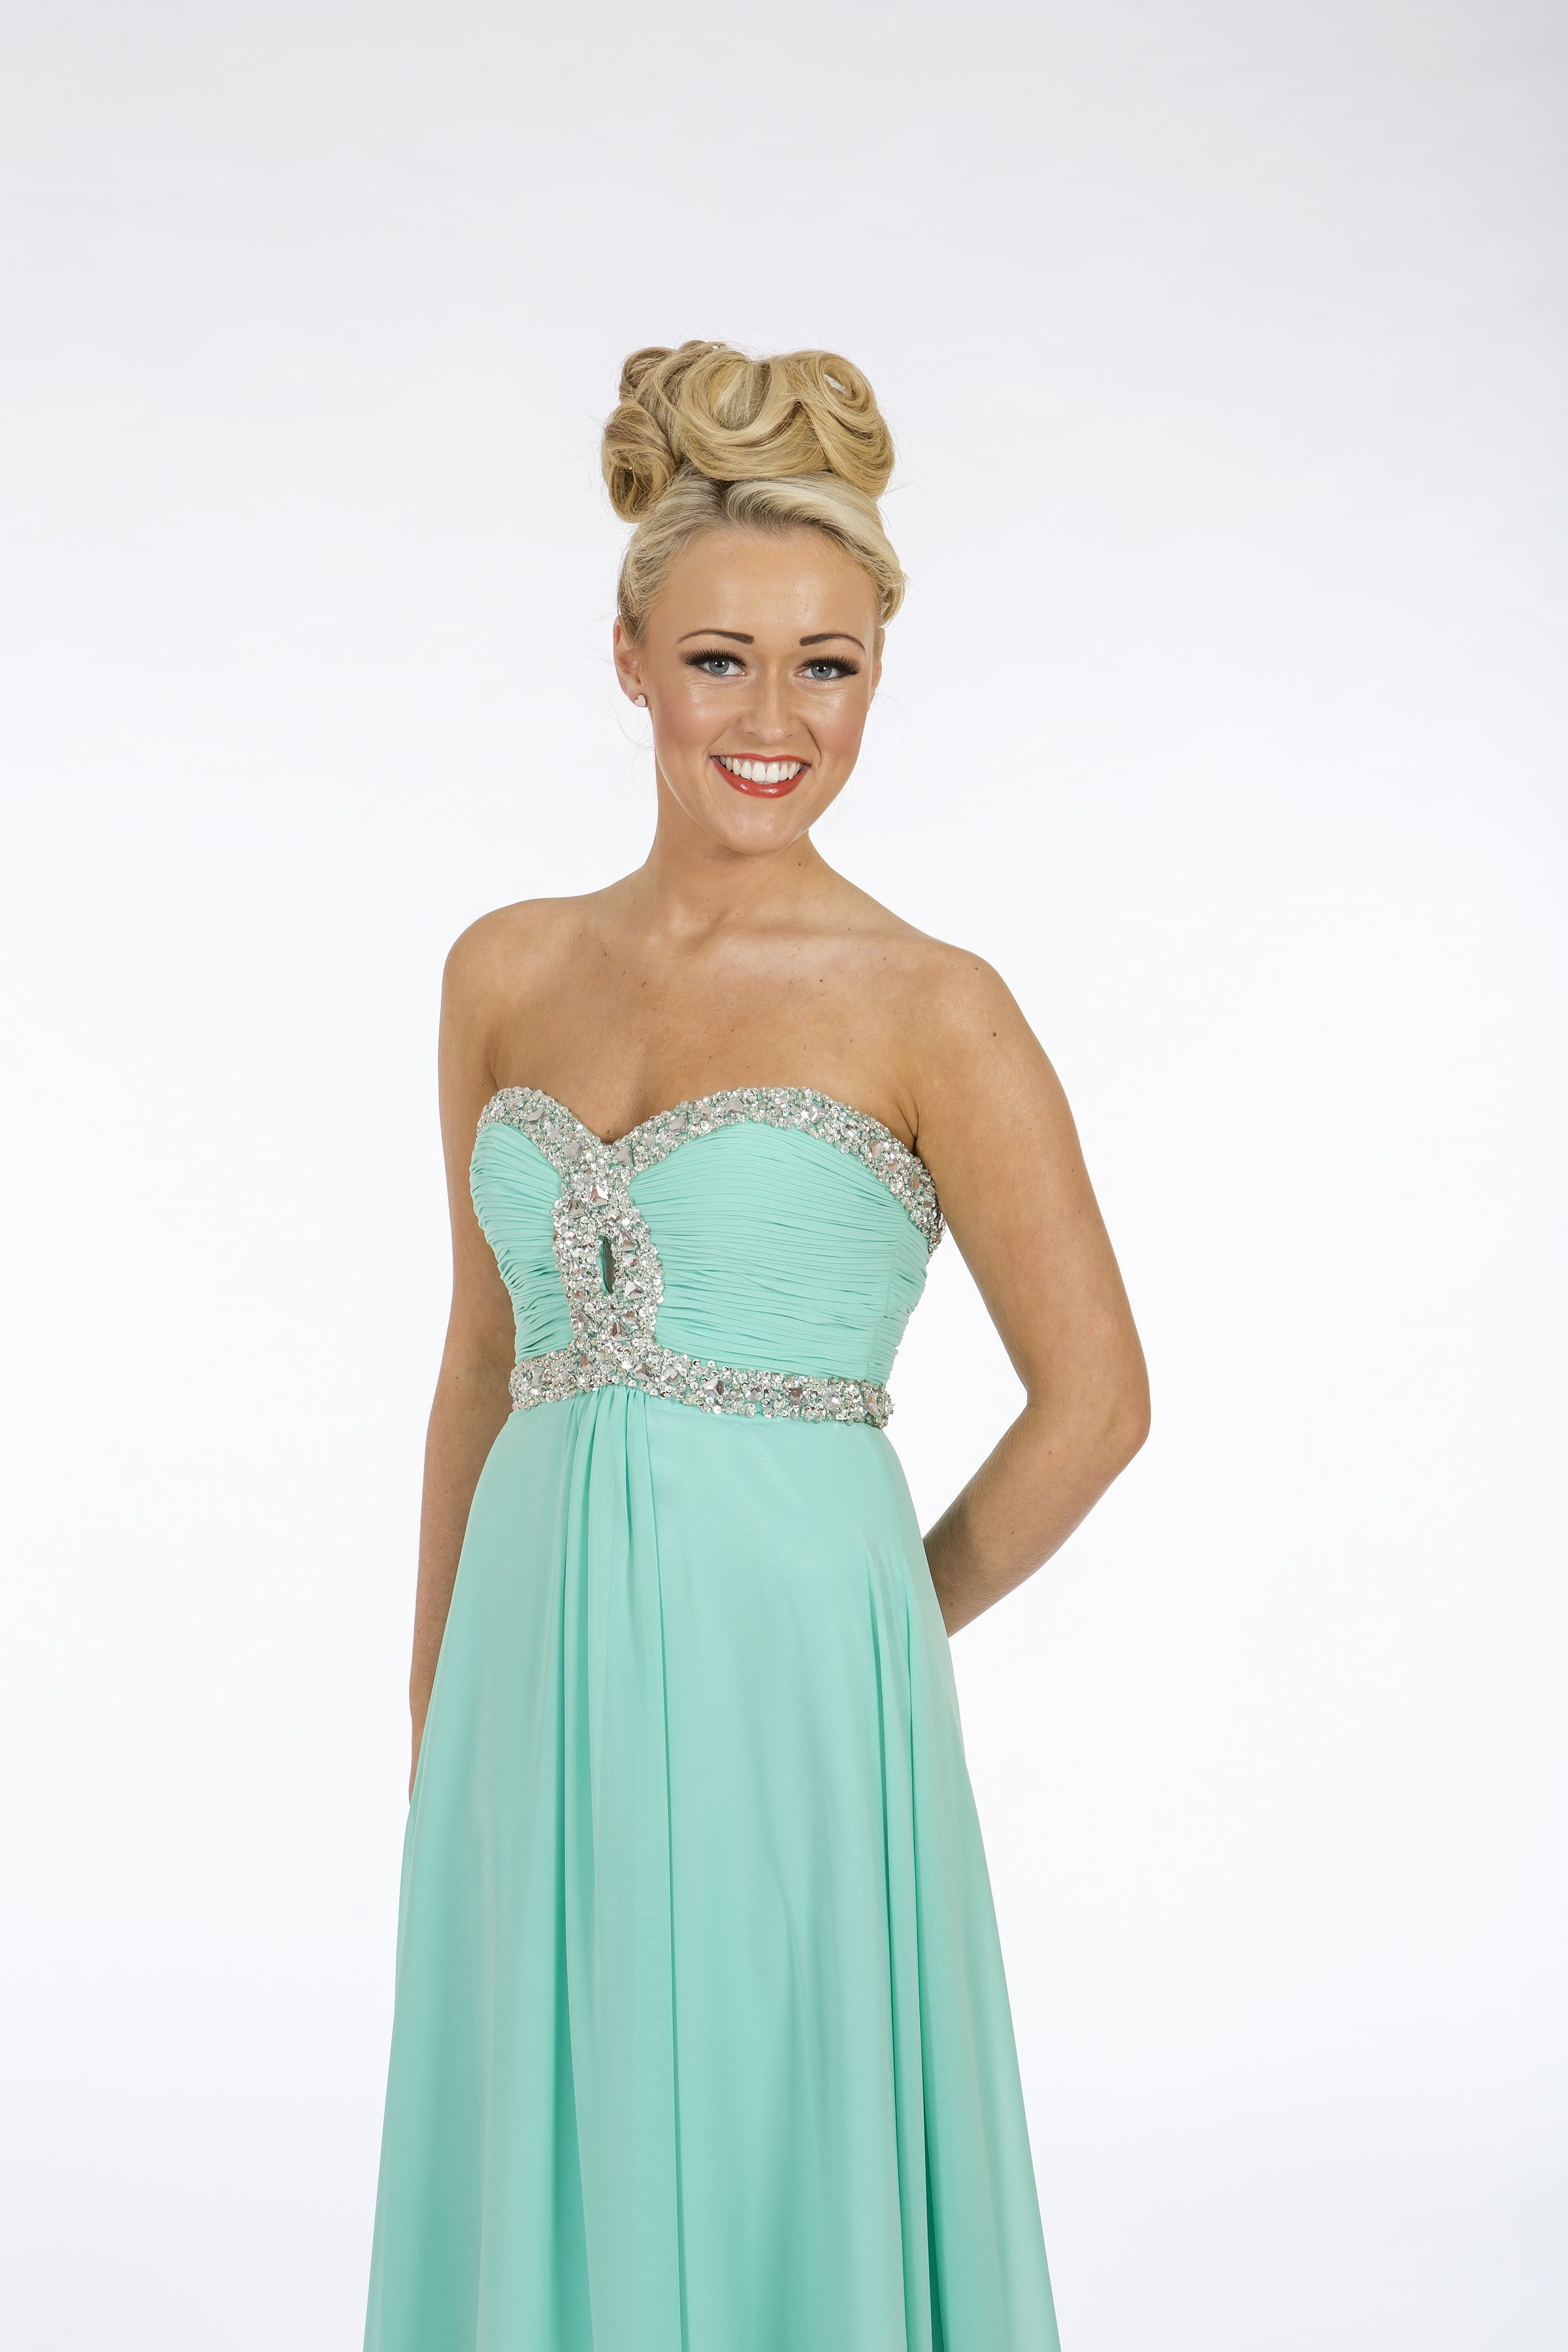 Amazing Prom Dresses Debs Clothing Store Gallery - Wedding Ideas ...